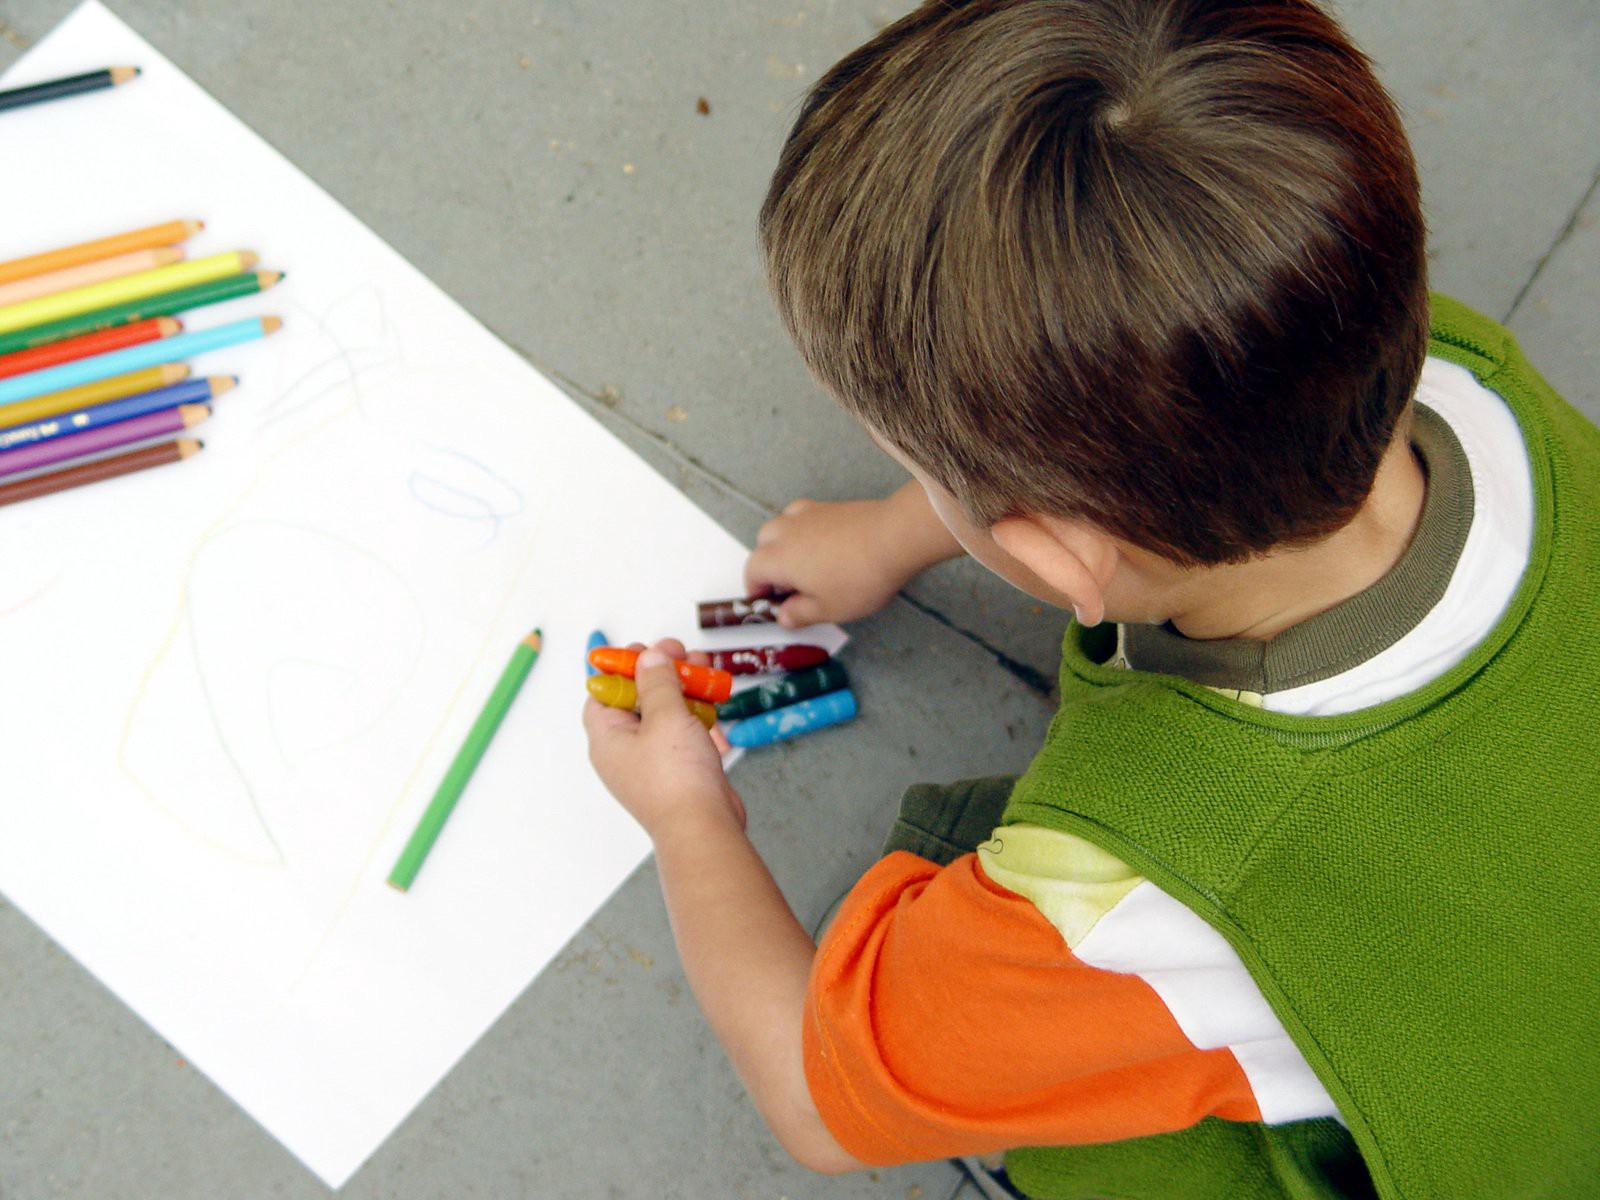 Paned shot of a child setting his pencils upon a hald drawn sheet of paper.